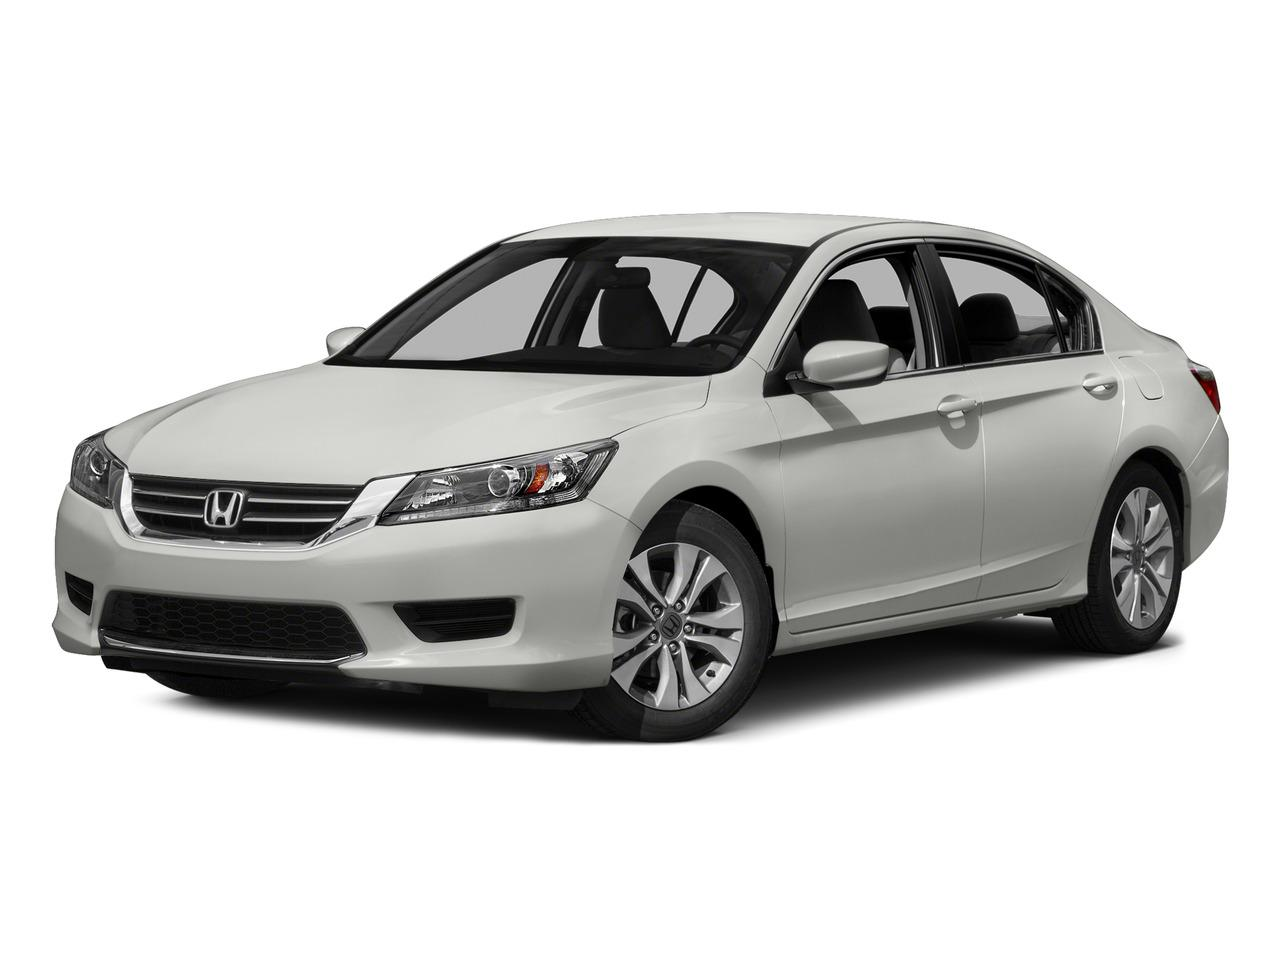 2015 Honda Accord Sedan Vehicle Photo in Anaheim, CA 92806